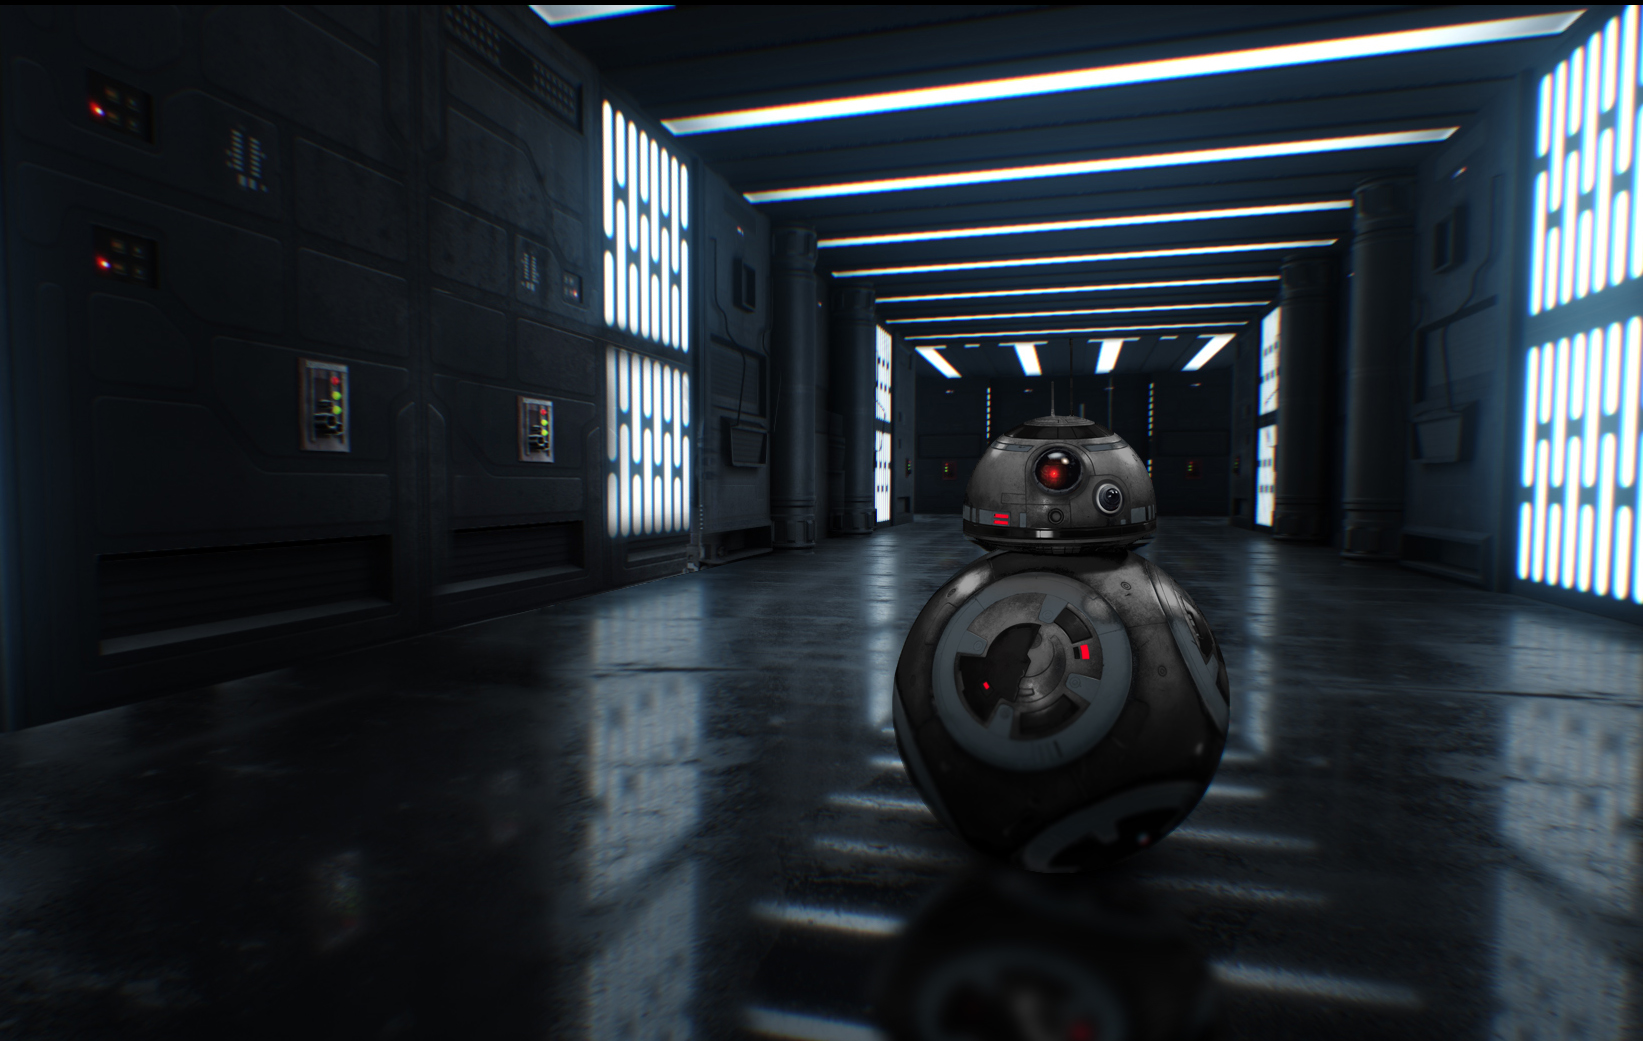 bb-9e-first-order-droid-star-wars-the-last-jedi